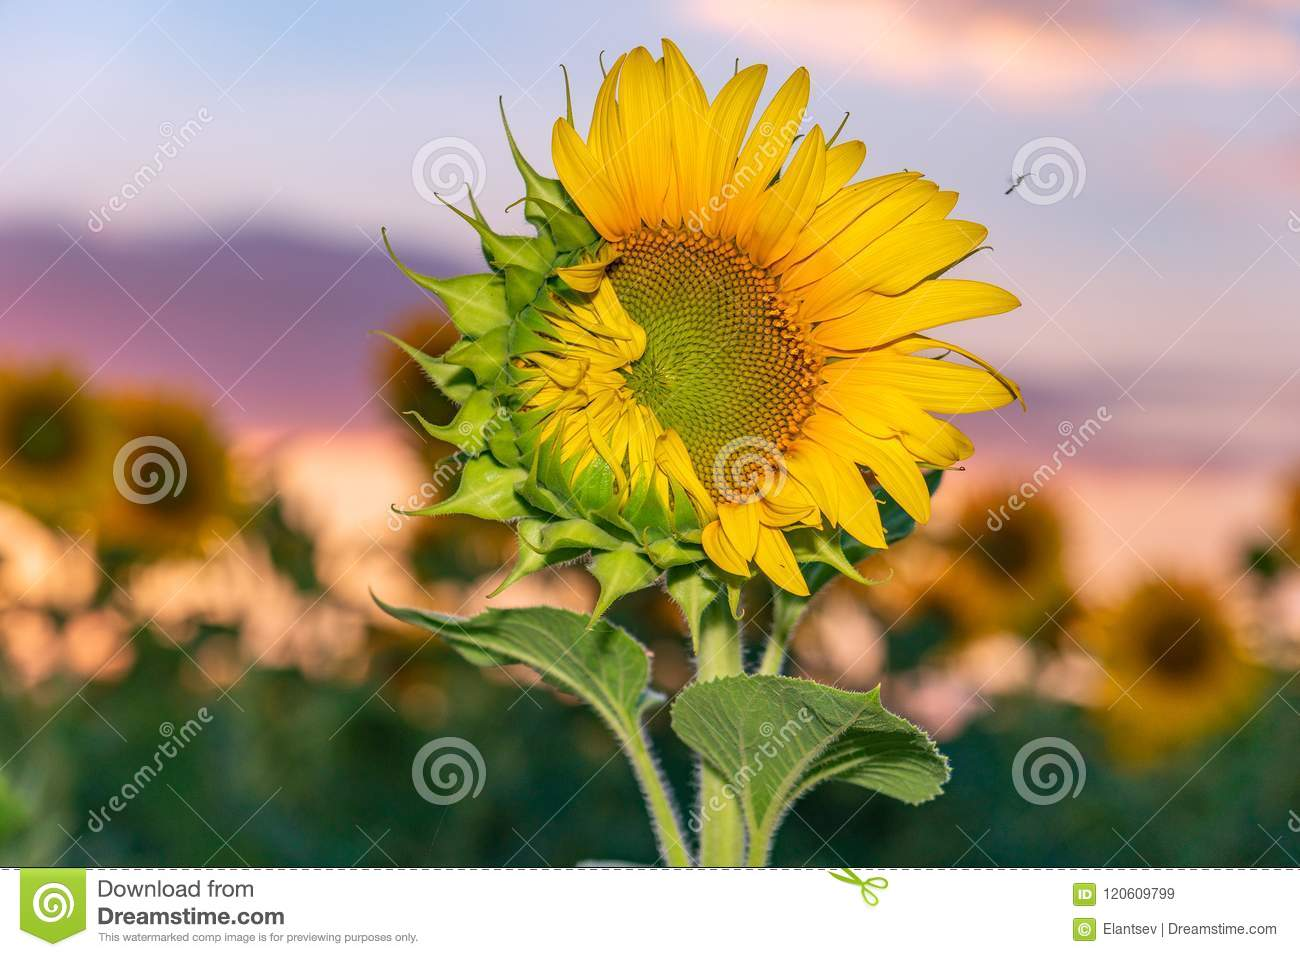 Beautiful sunflowers in the field natural background stock image beautiful sunflowers in the field natural background izmirmasajfo